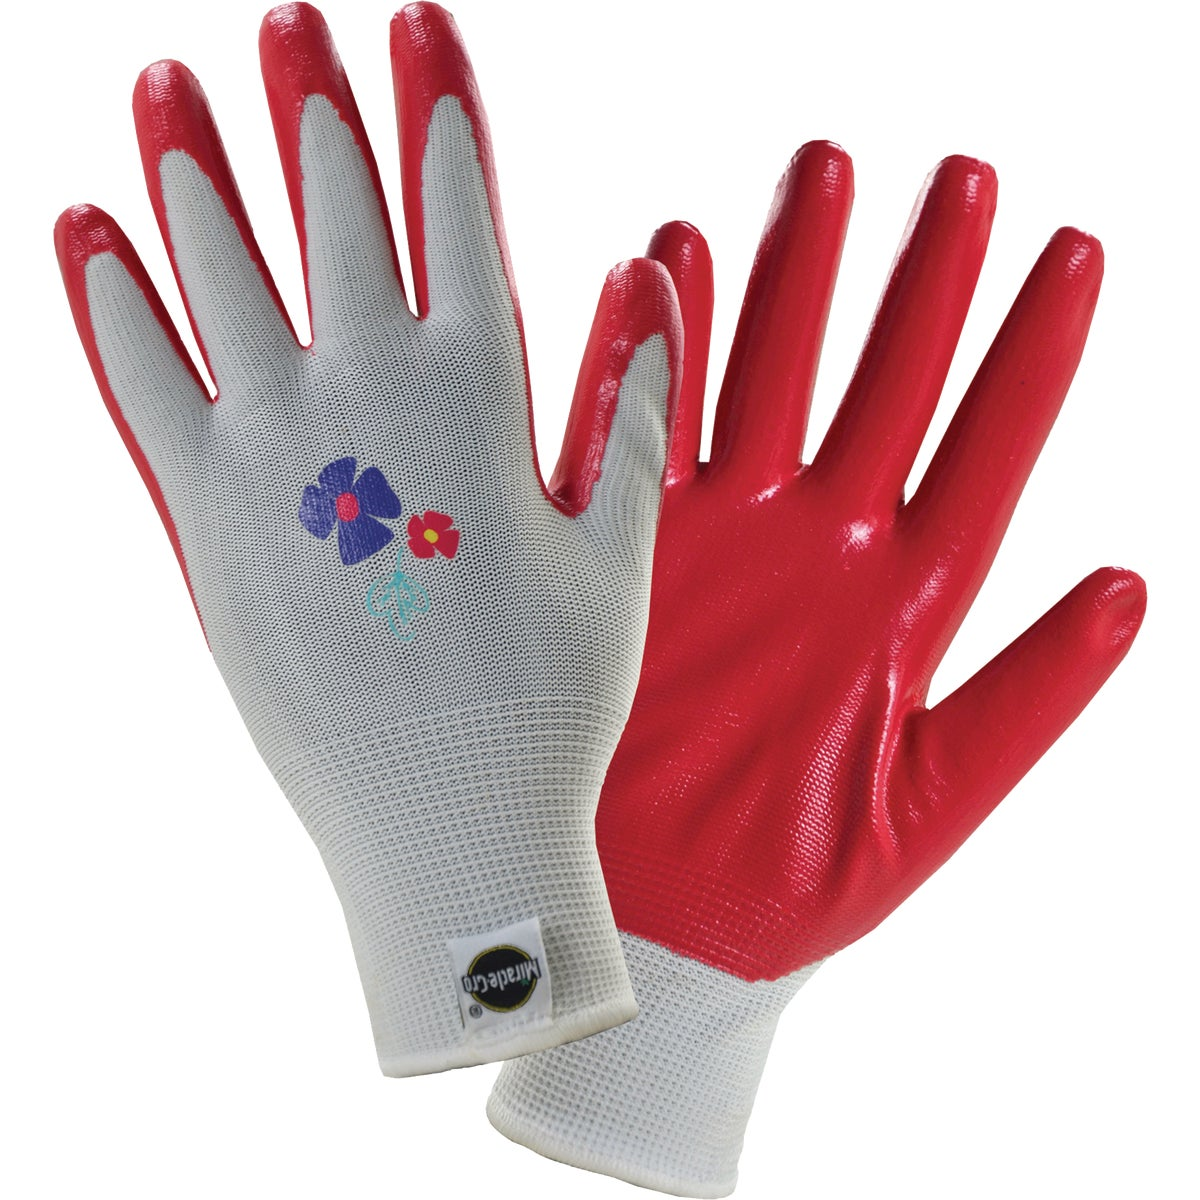 MED LADY NITR KNIT GLOVE - 514M by Wells Lamont